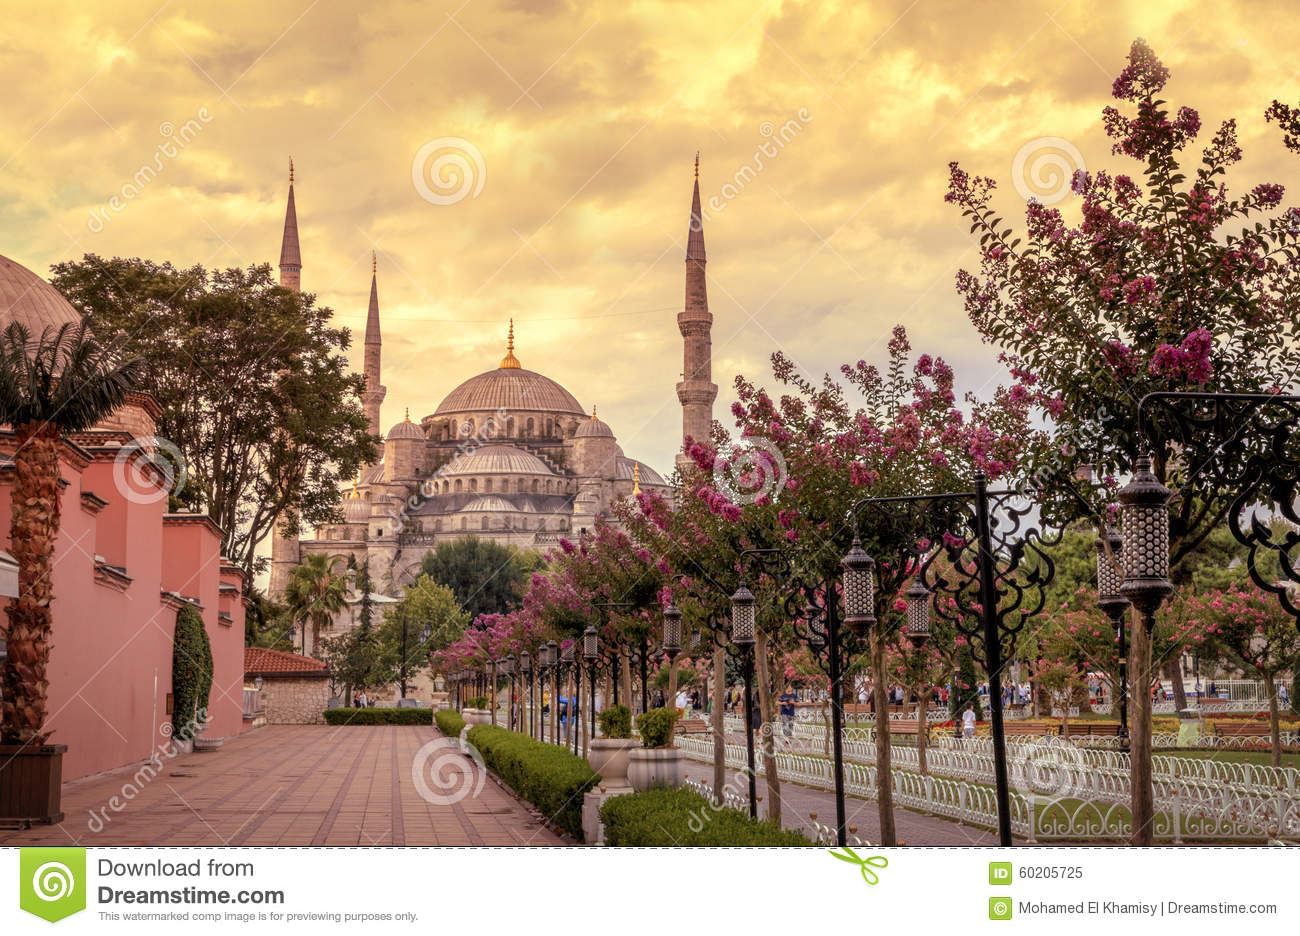 Download Sultan Ahmet Mosque (Blue Mosque),Istanbul - Turkey. Stock Image - Image of europe, asian: 60205725